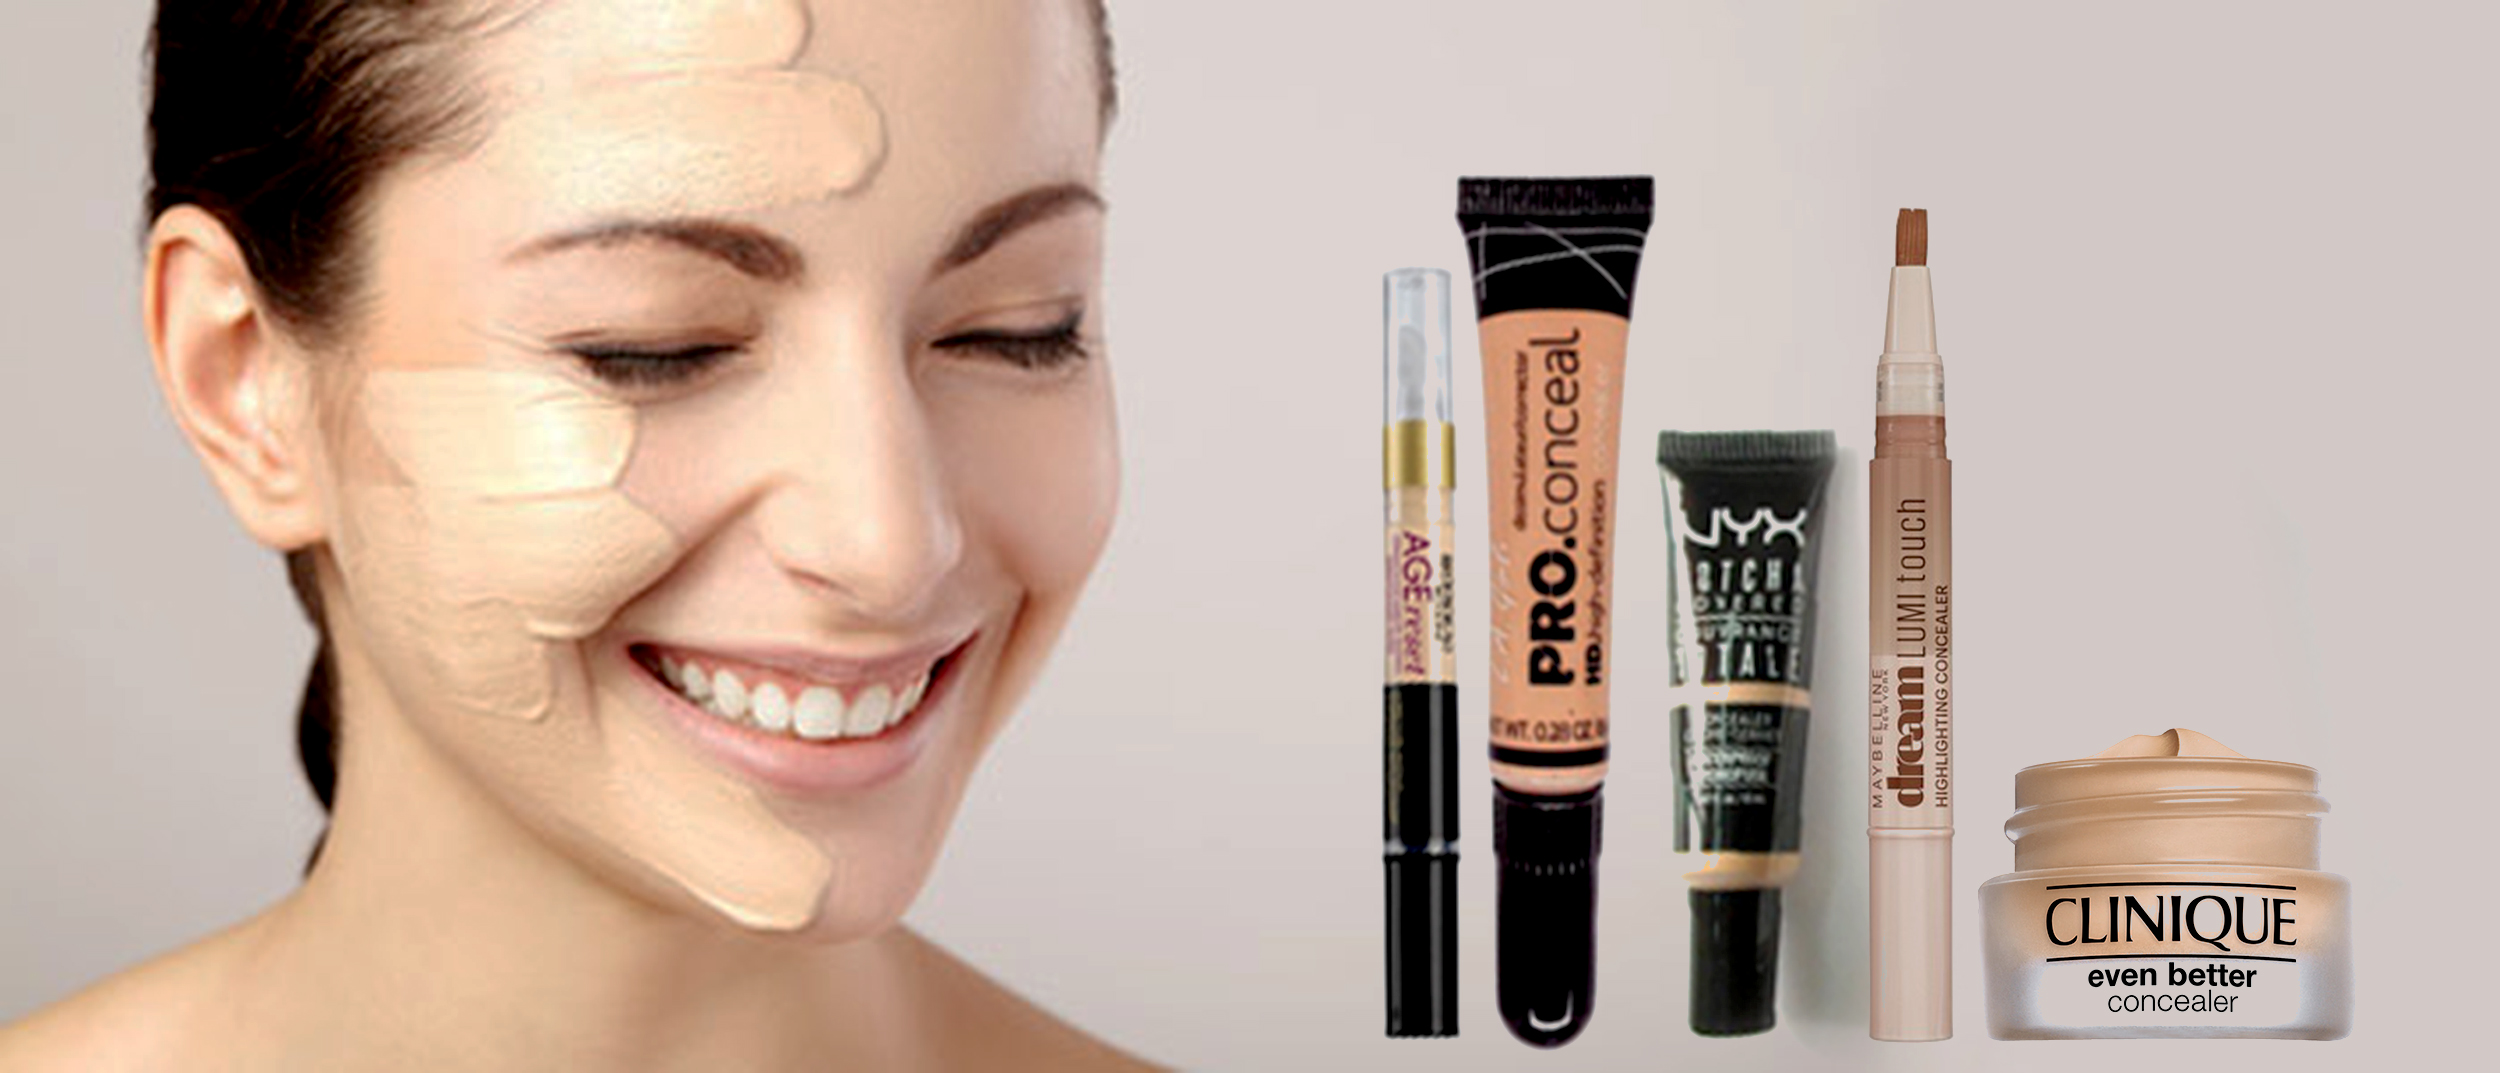 15 Best Concealers For Women In India images